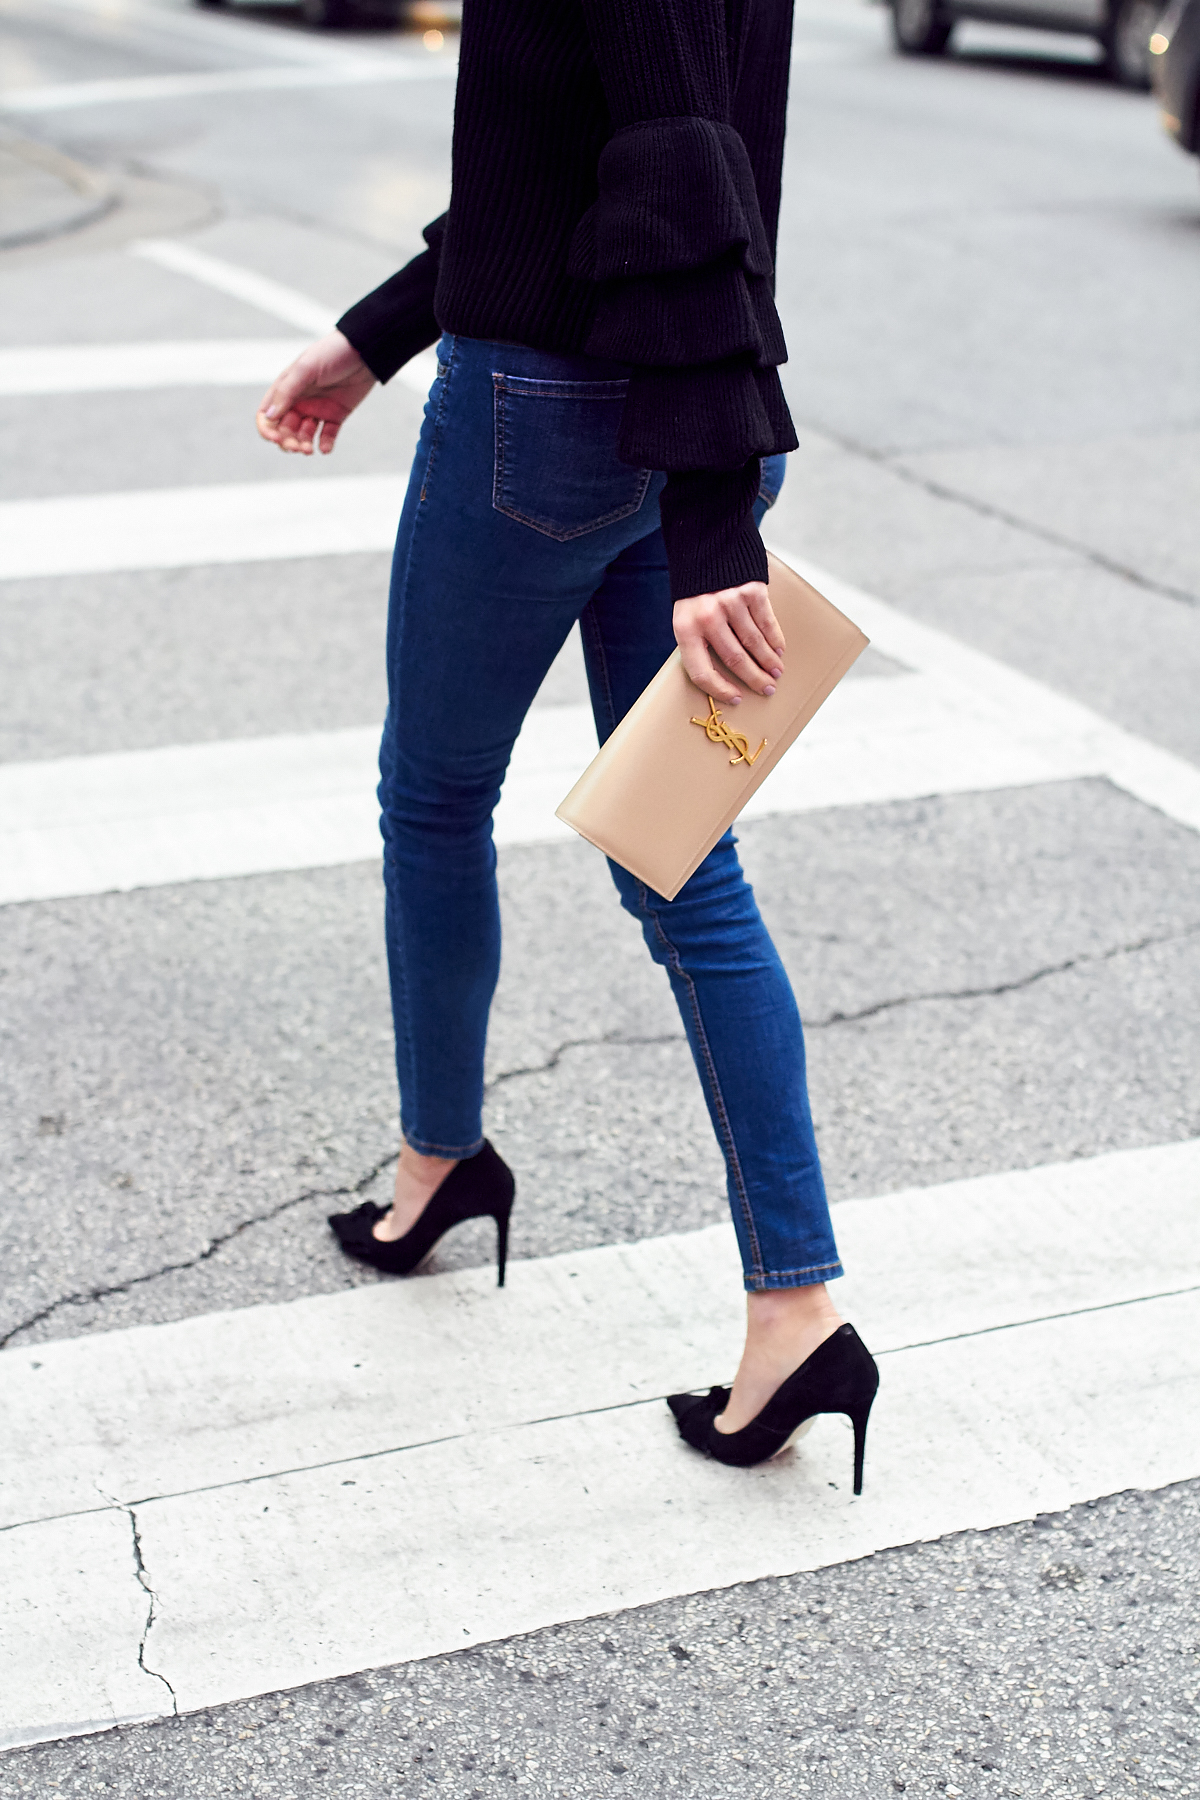 Fall Outfit, Winter Outfit, Ruffle Sleeve Sweater, Denim Skinny Jeans, Black Bow Pumps, Saint Laurent Clutch